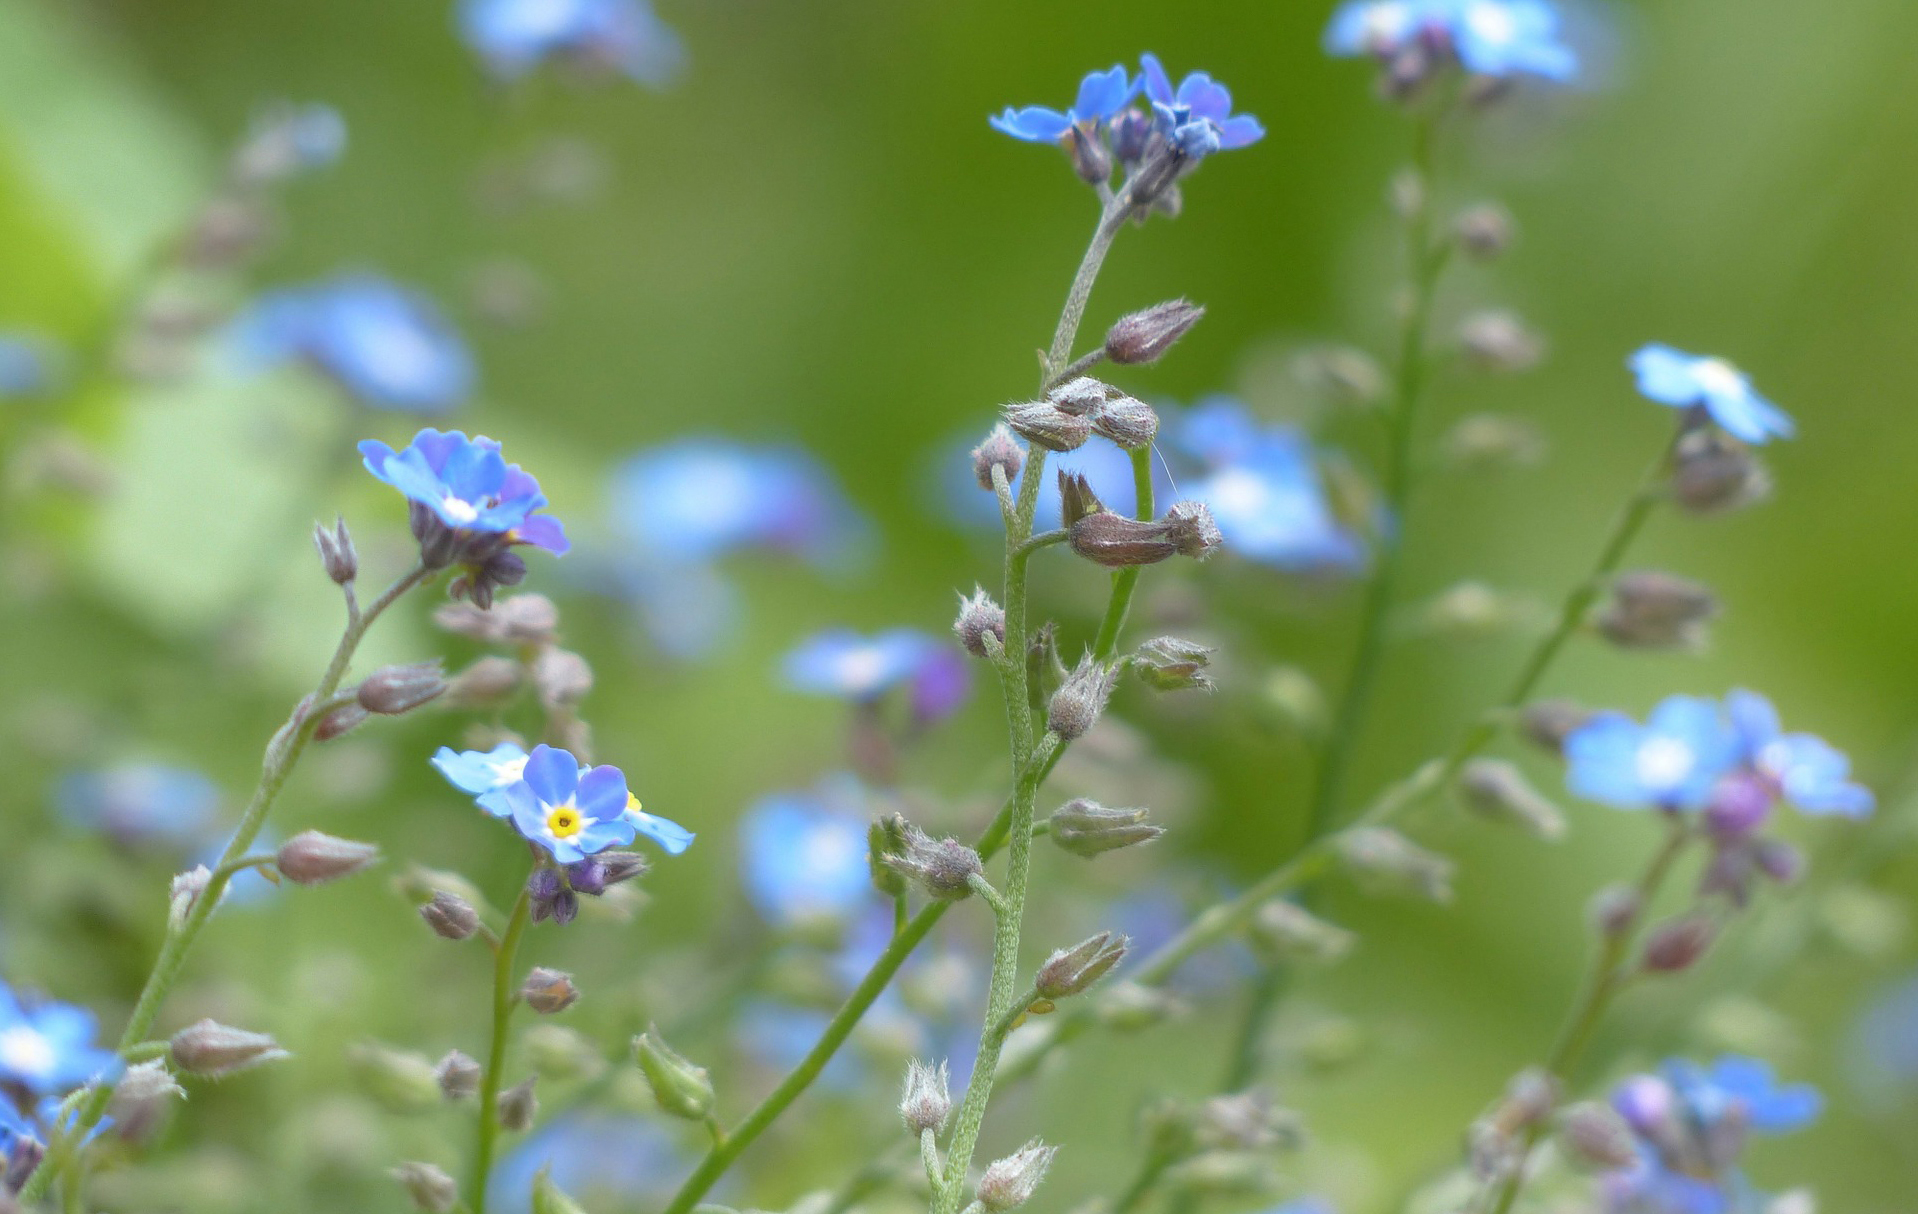 Close-up of forget-me-not flowers in a field.